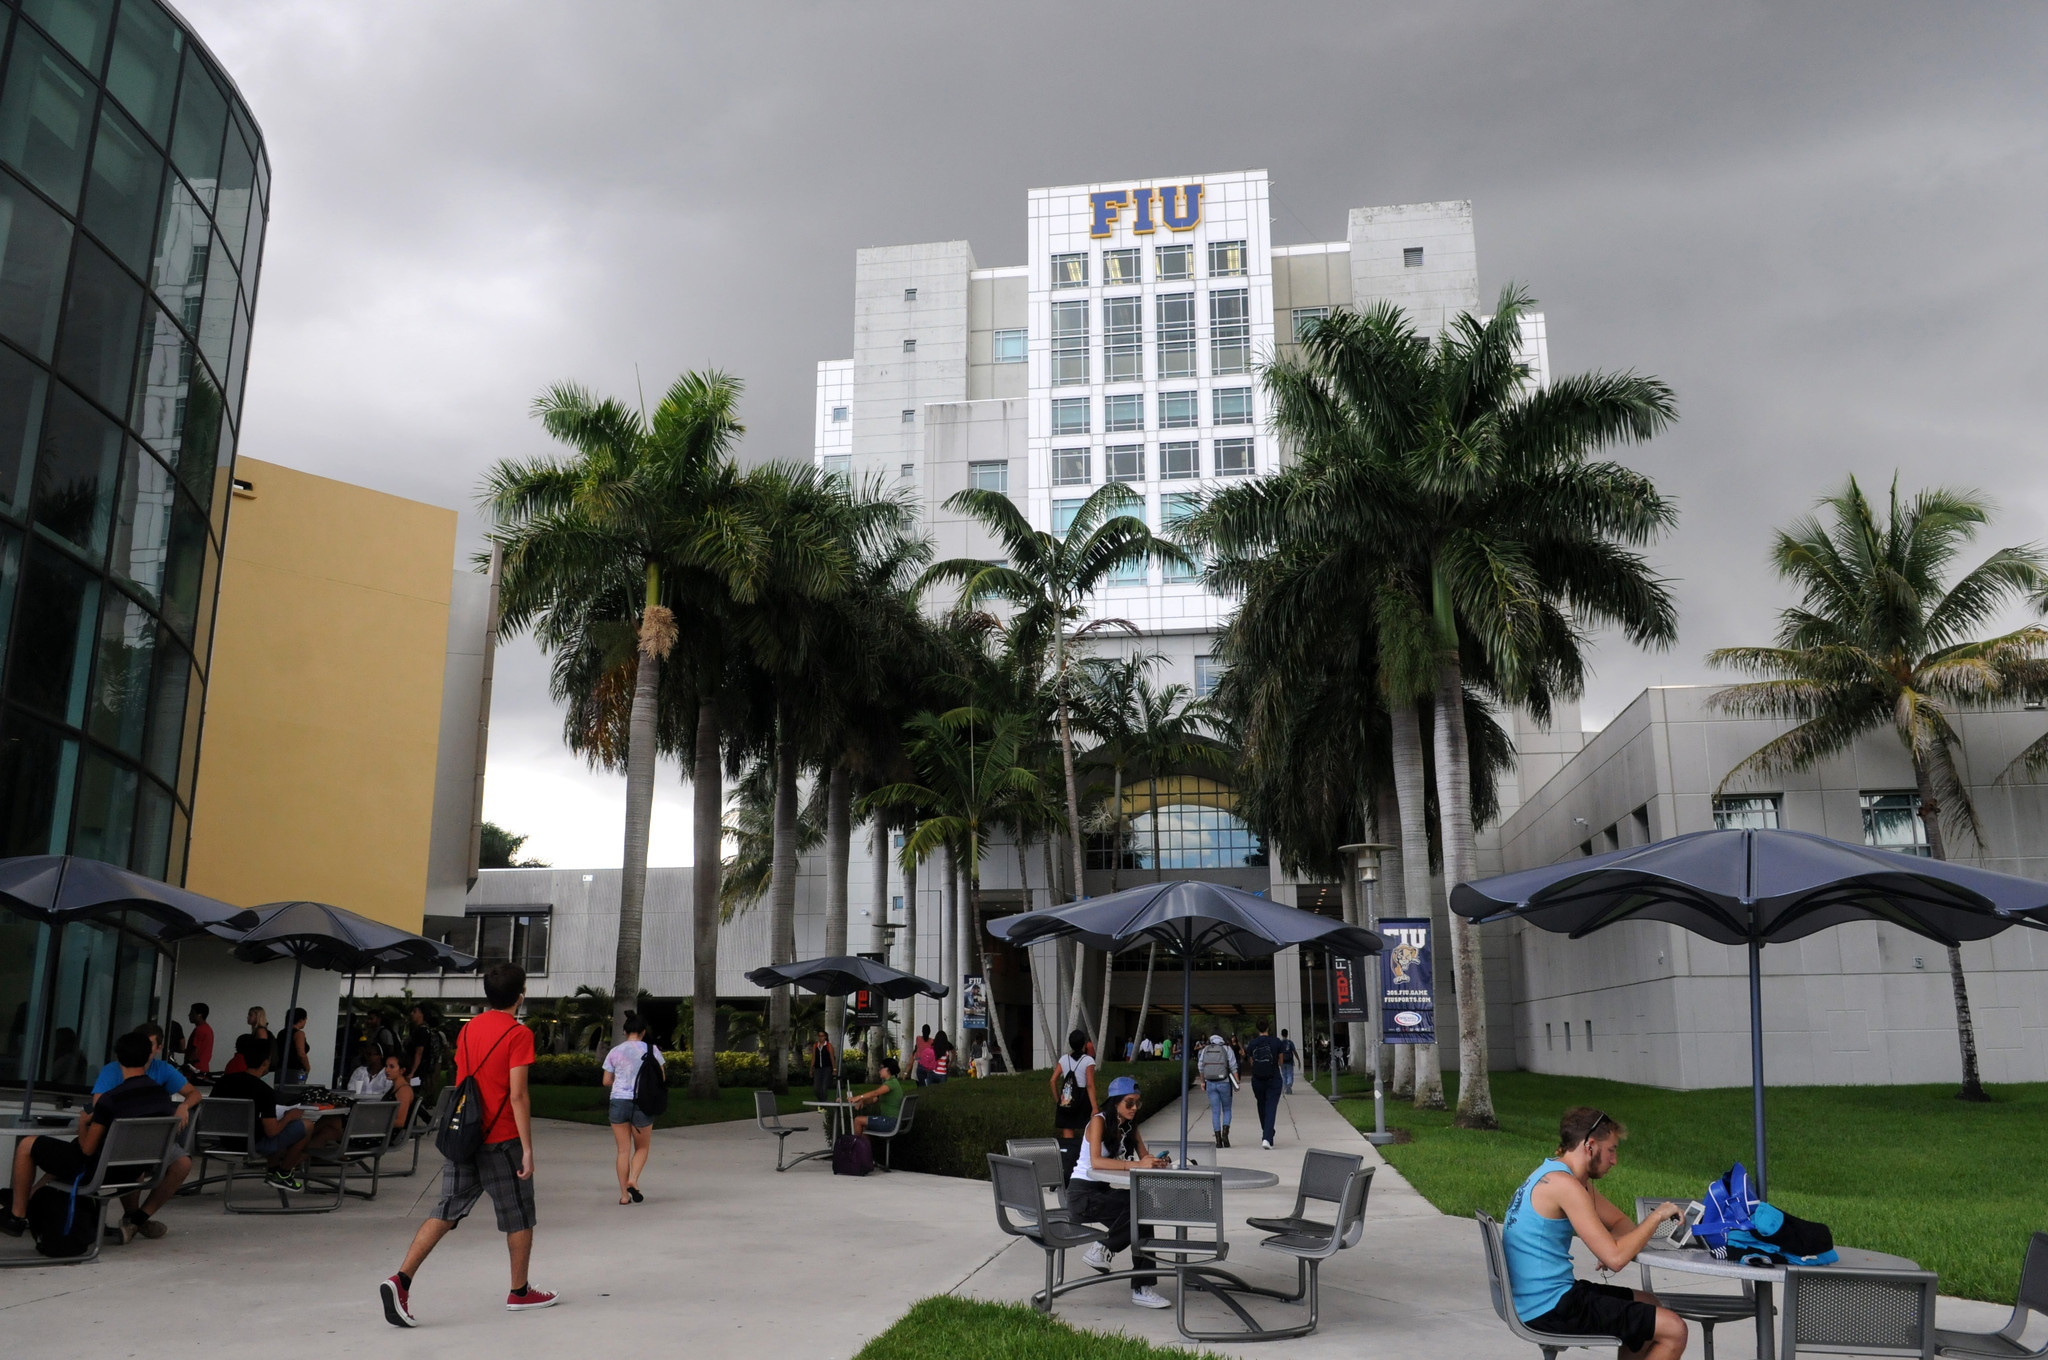 Fiu receives 23 million in federal grants for programs focusing fiu receives 23 million in federal grants for programs focusing on latin america africa sun sentinel 1betcityfo Gallery